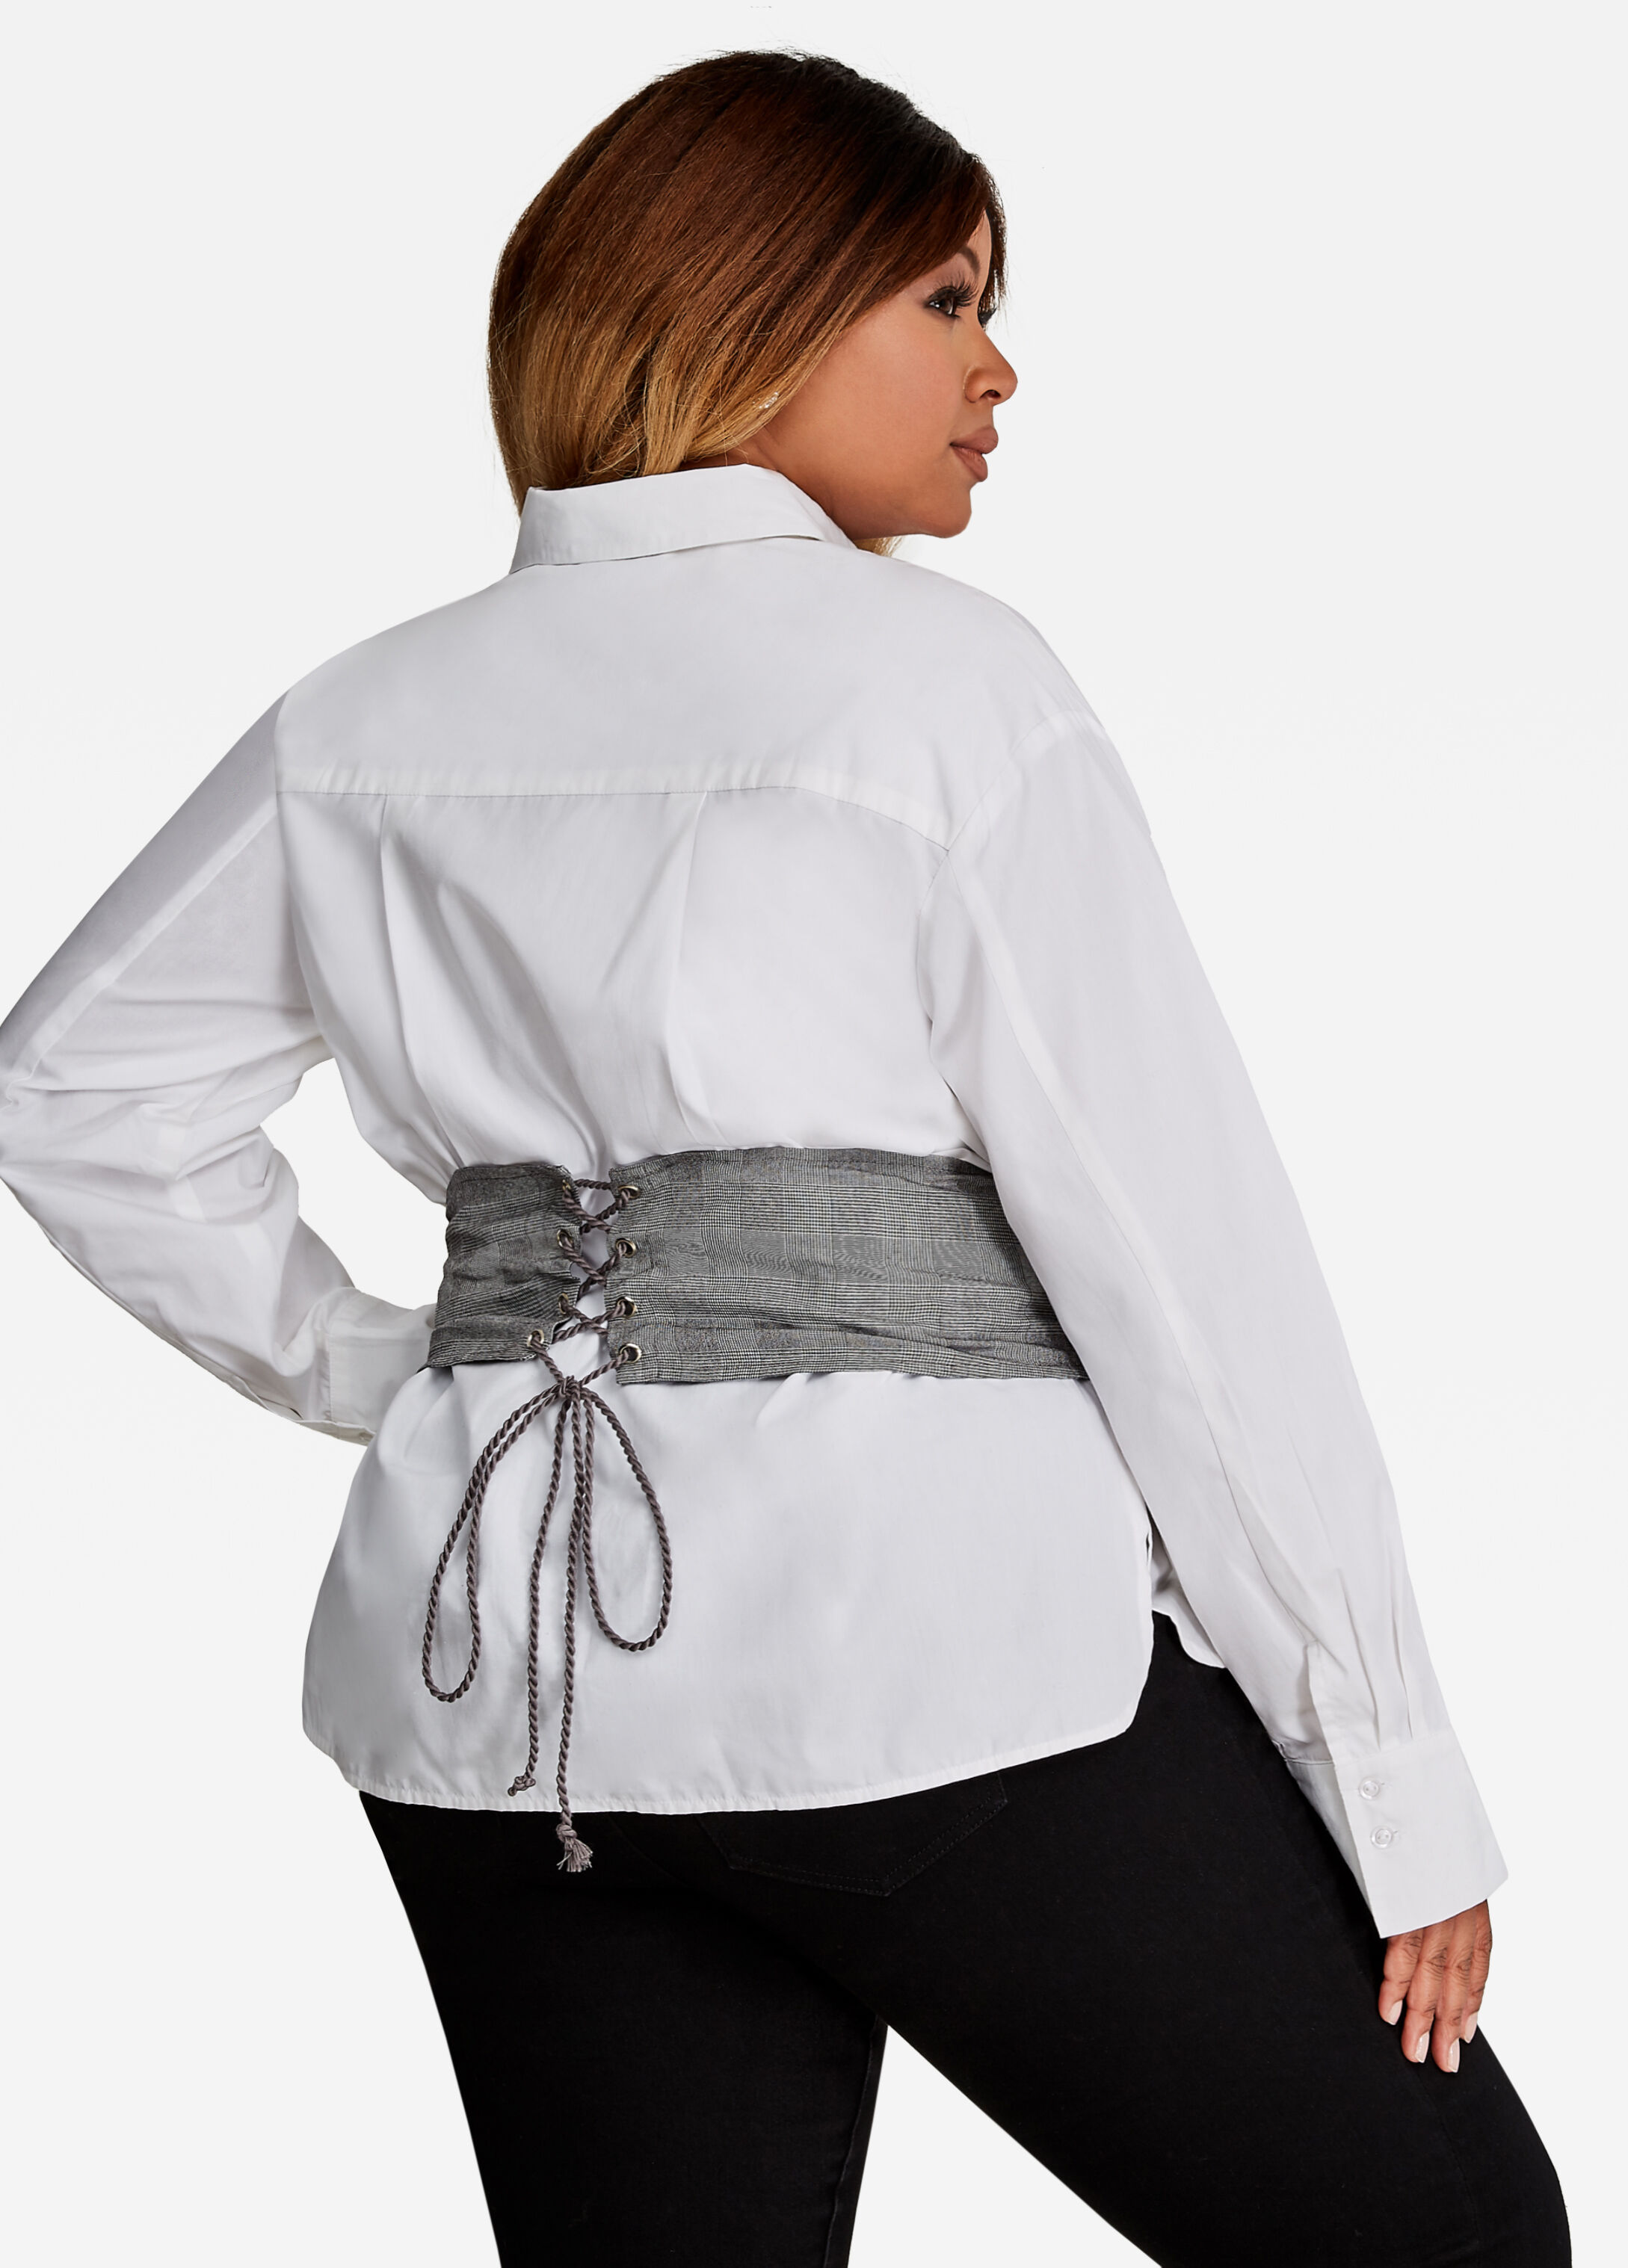 Button Up Dress Shirt With Corset